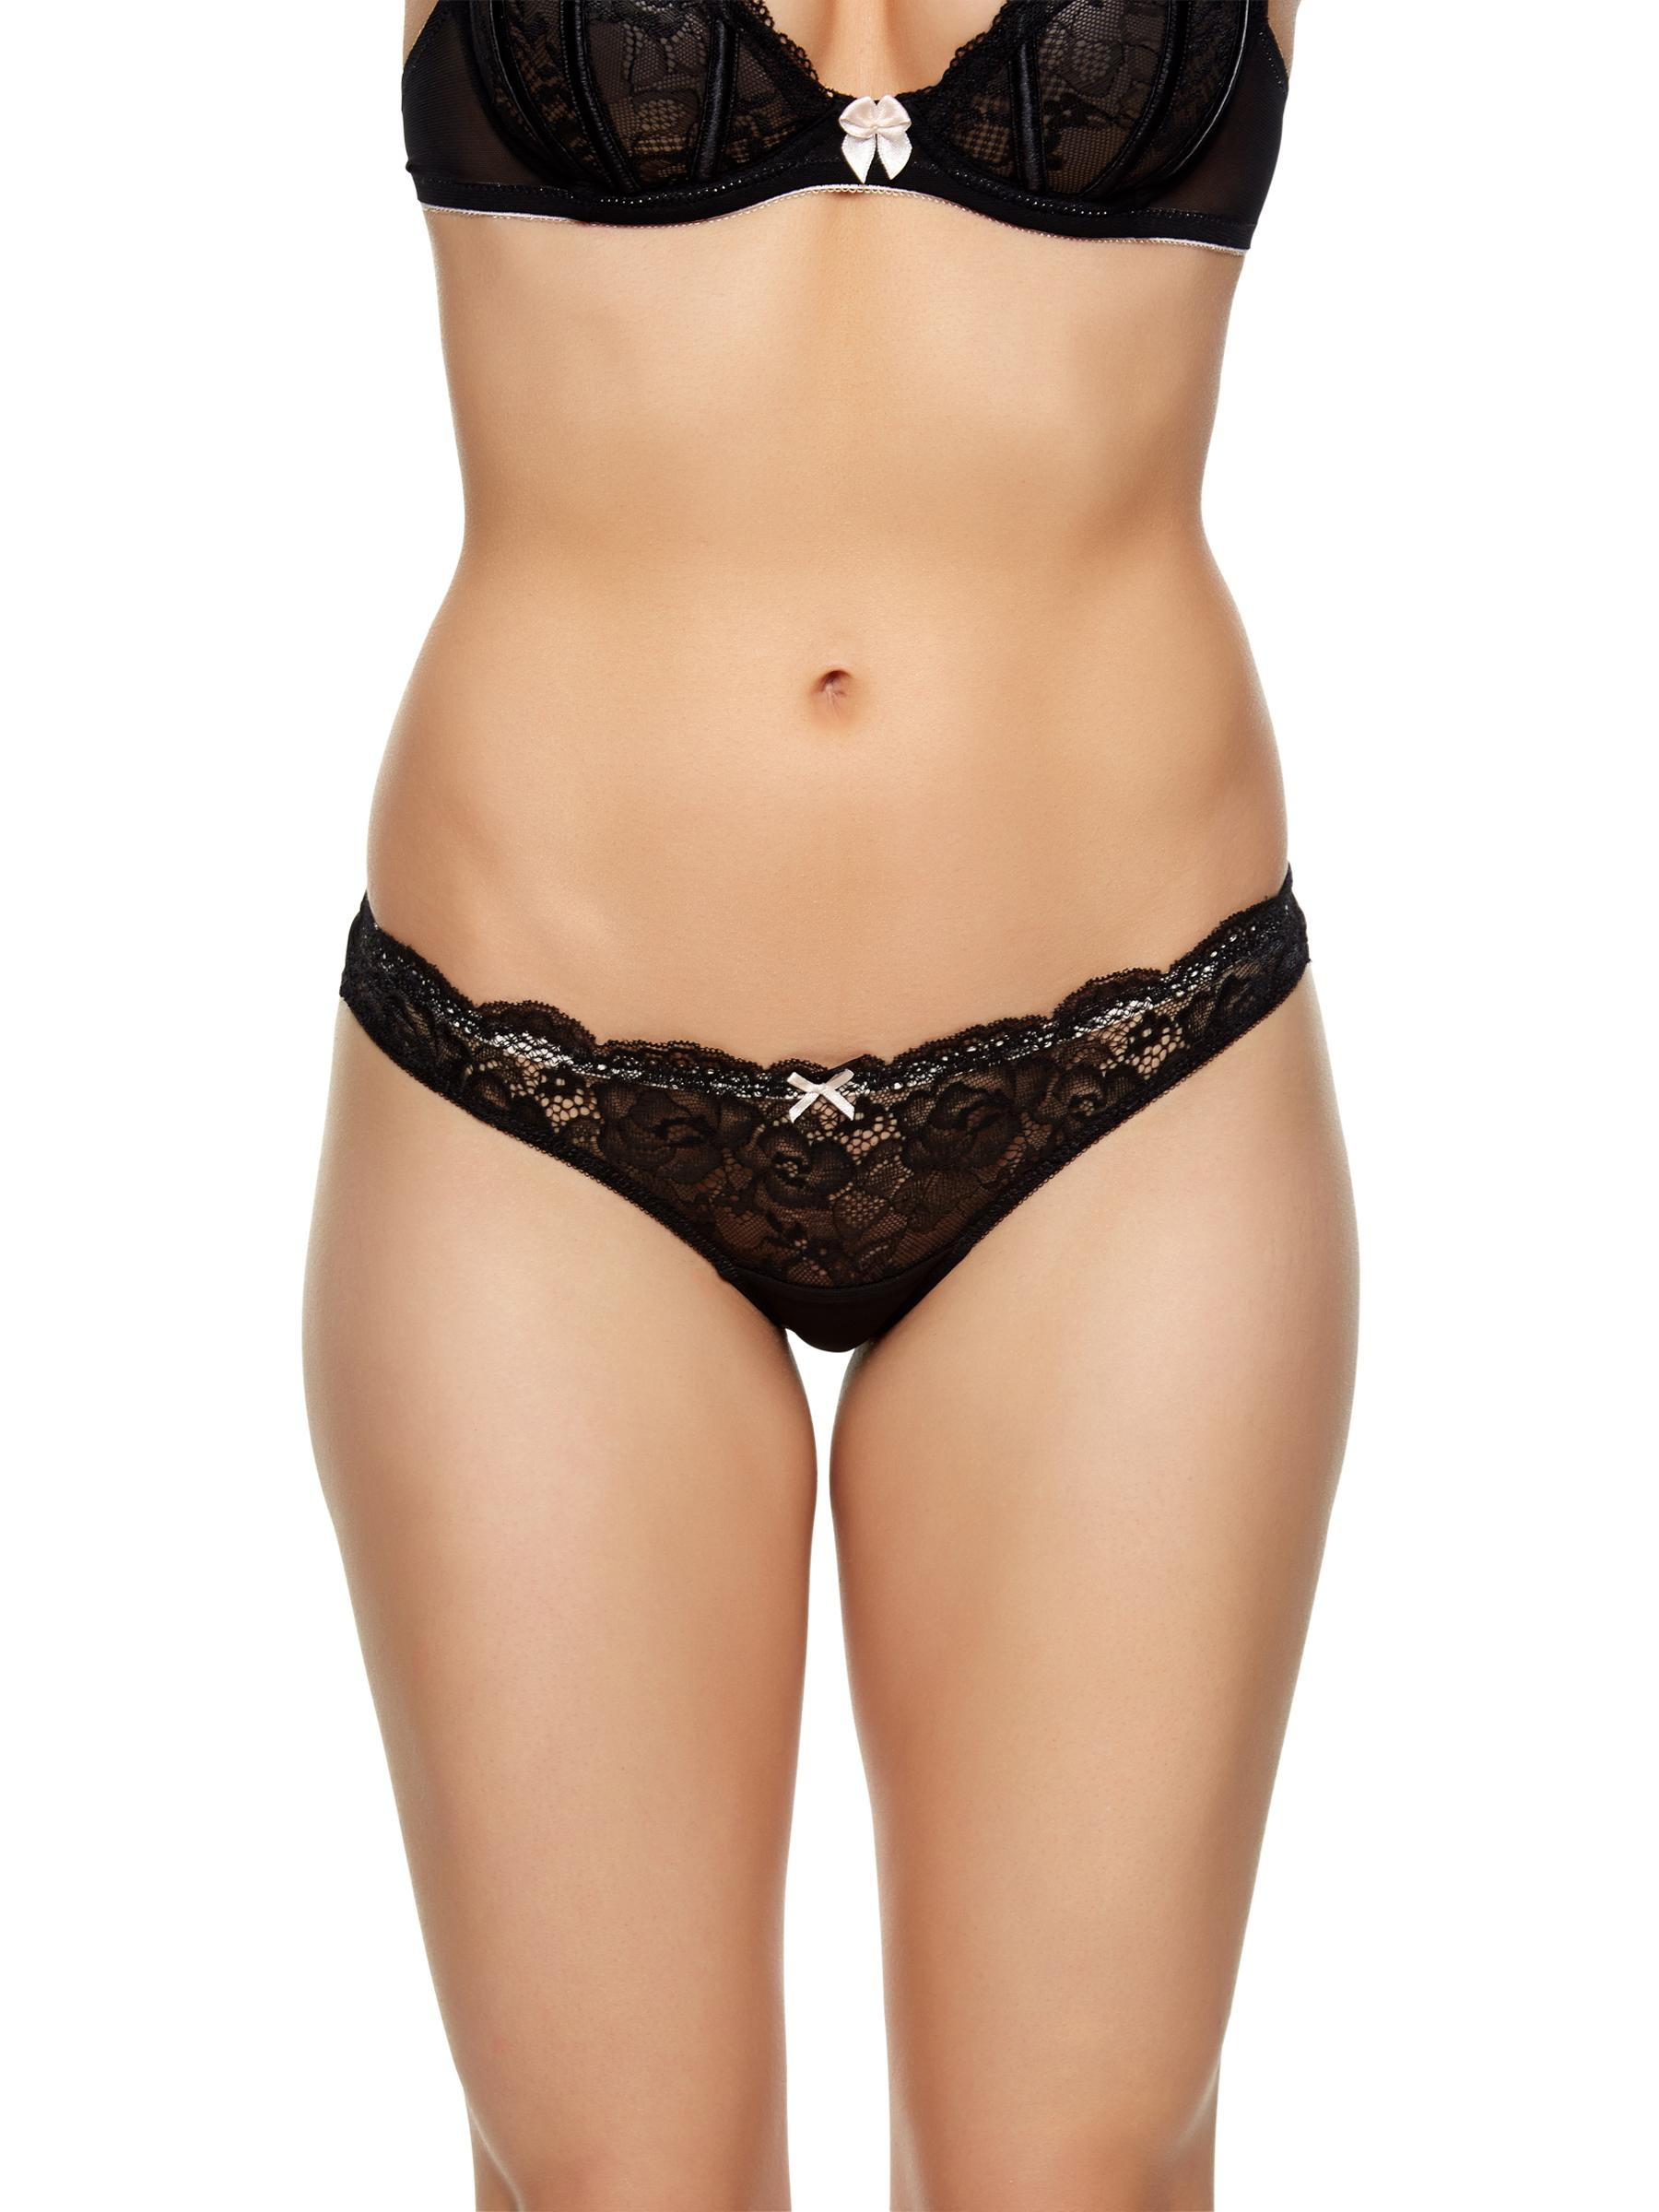 Womens Sexy Lace Brazilian Briefs Ann Summers Clearance Good Selling N2sLbEHOe